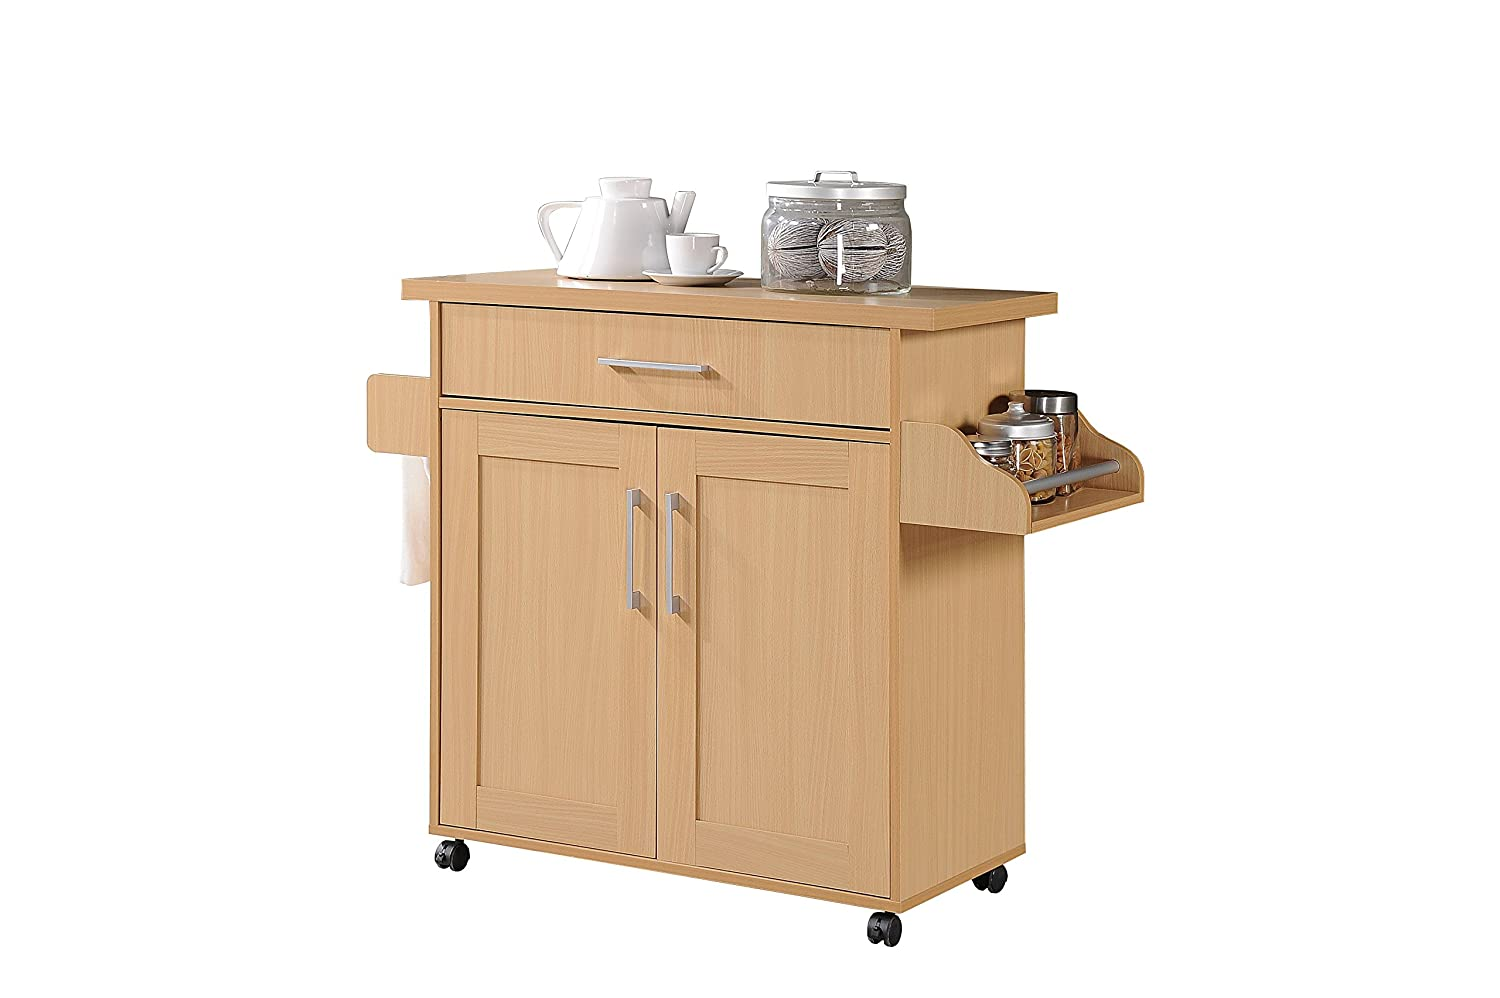 Hodedah Kitchen Island with Spice Rack, Towel Rack & Drawer, Beech